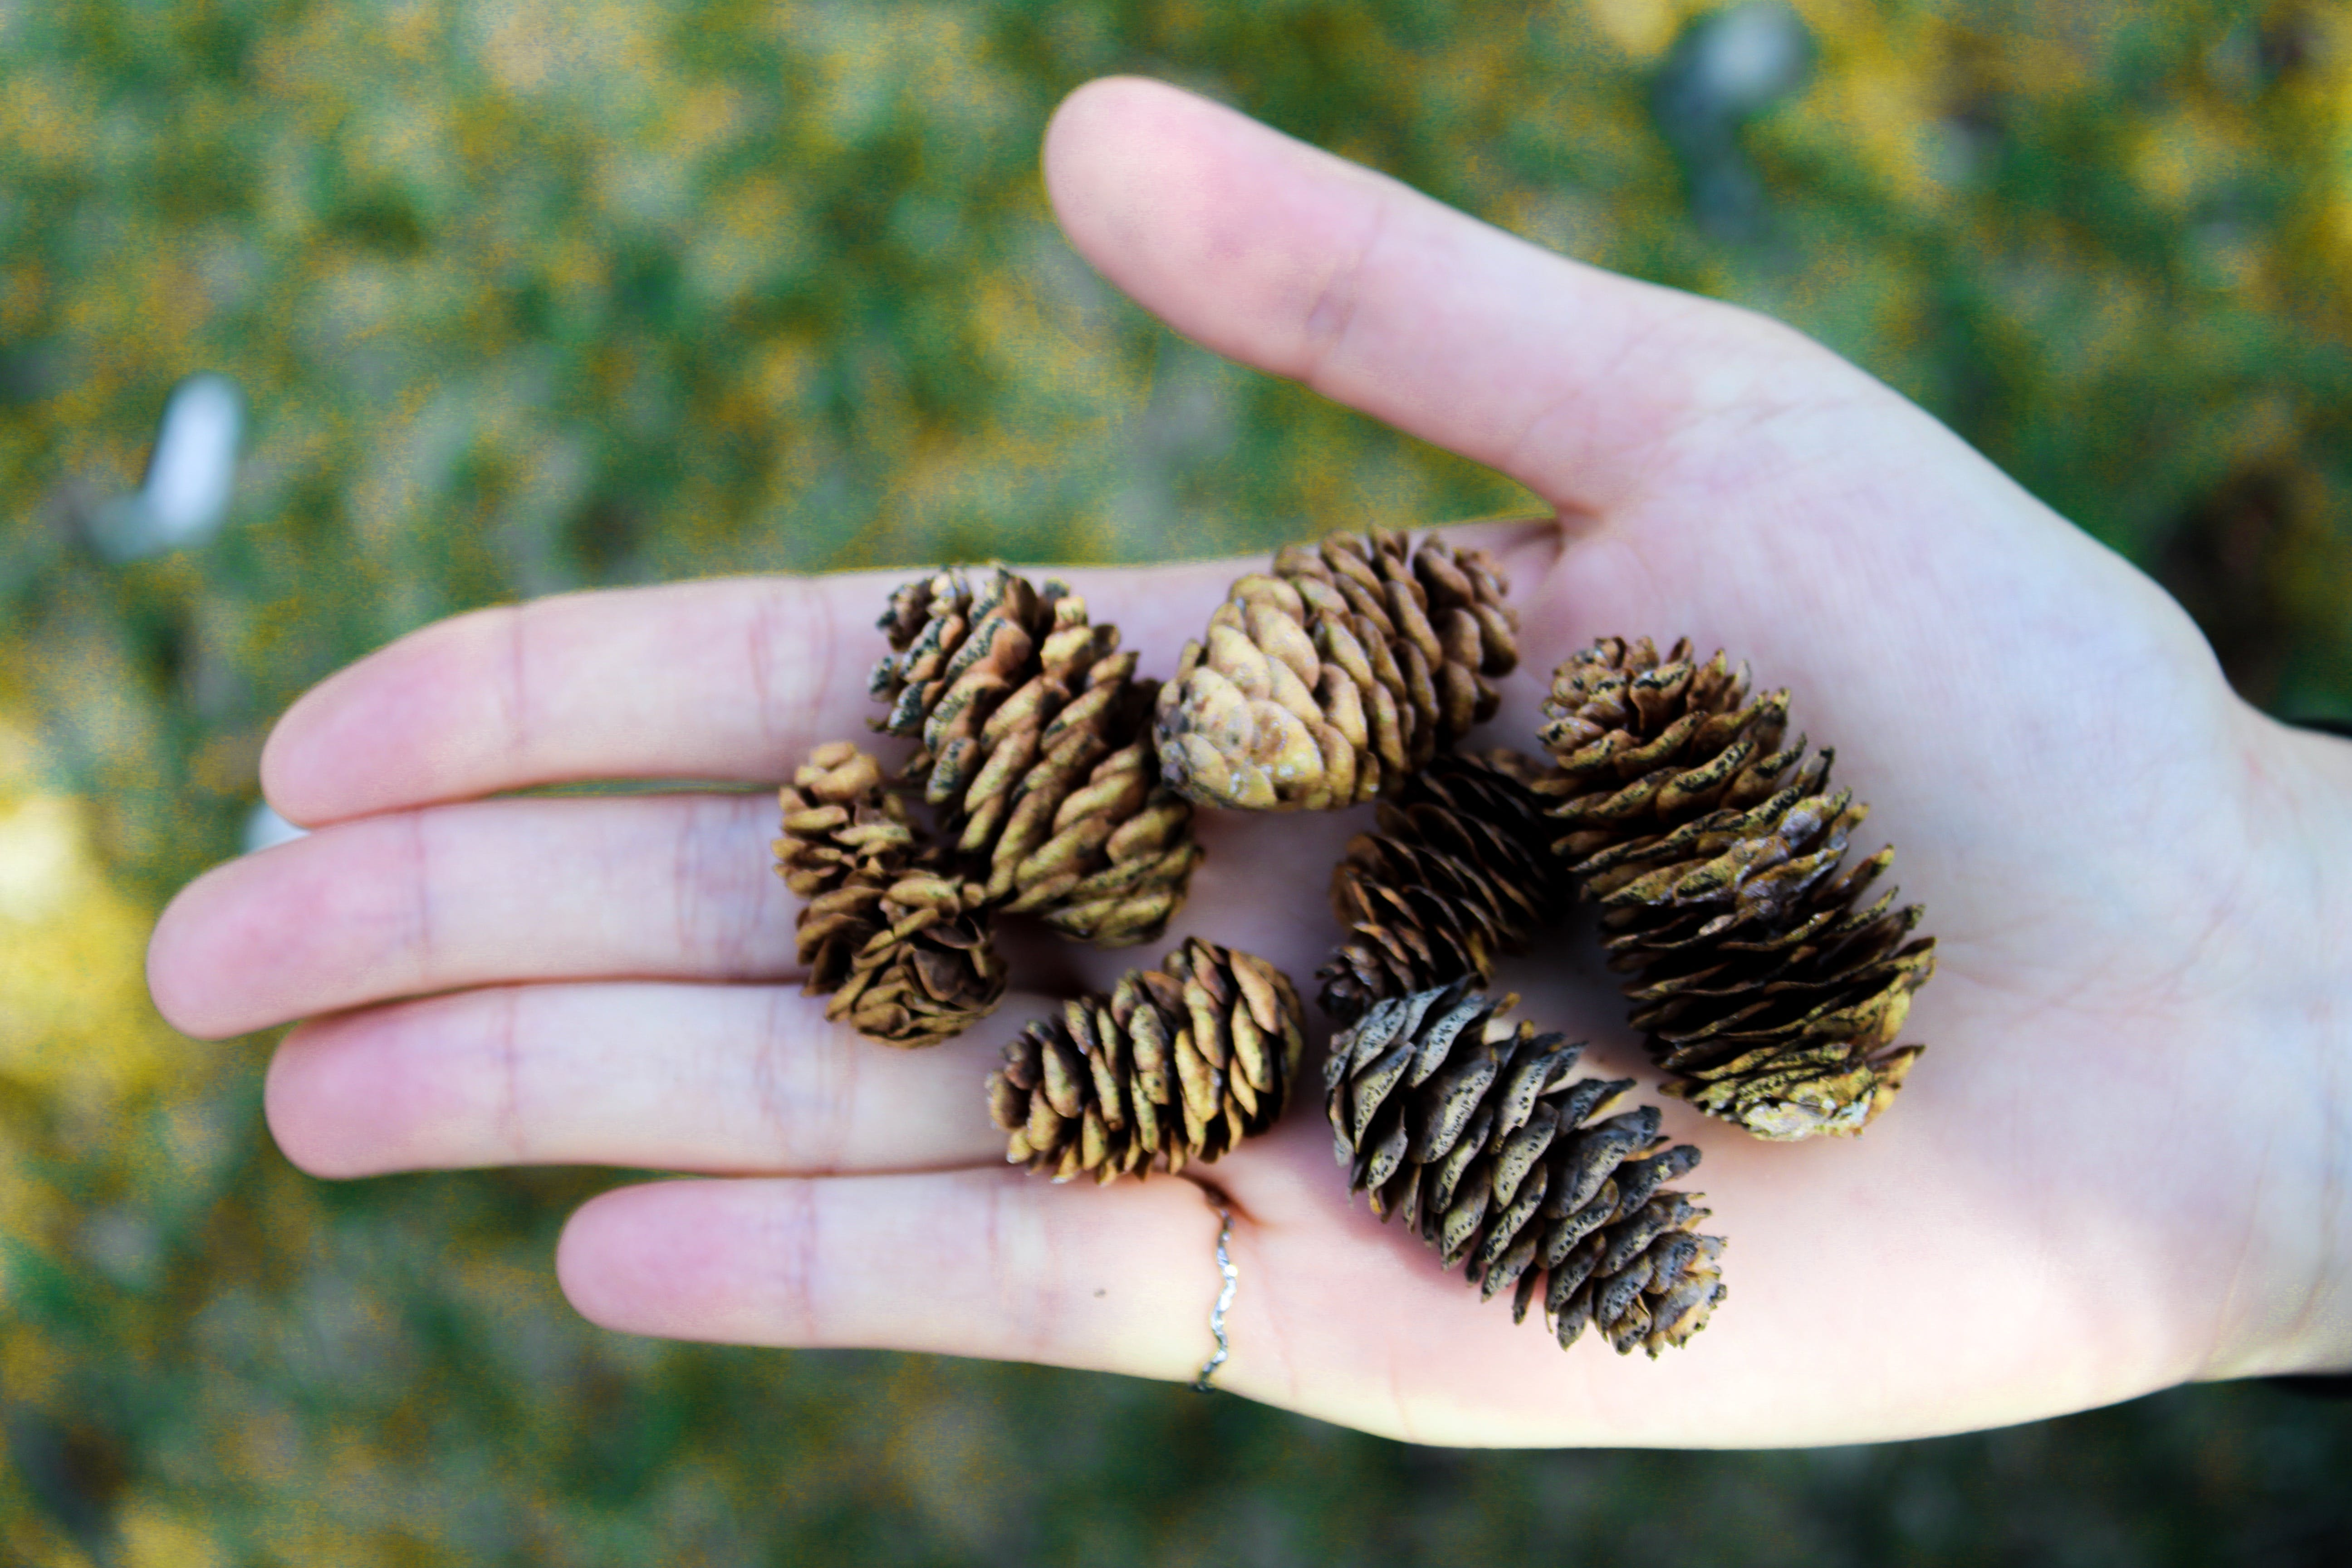 Pine Tree Cons on Person's Palm